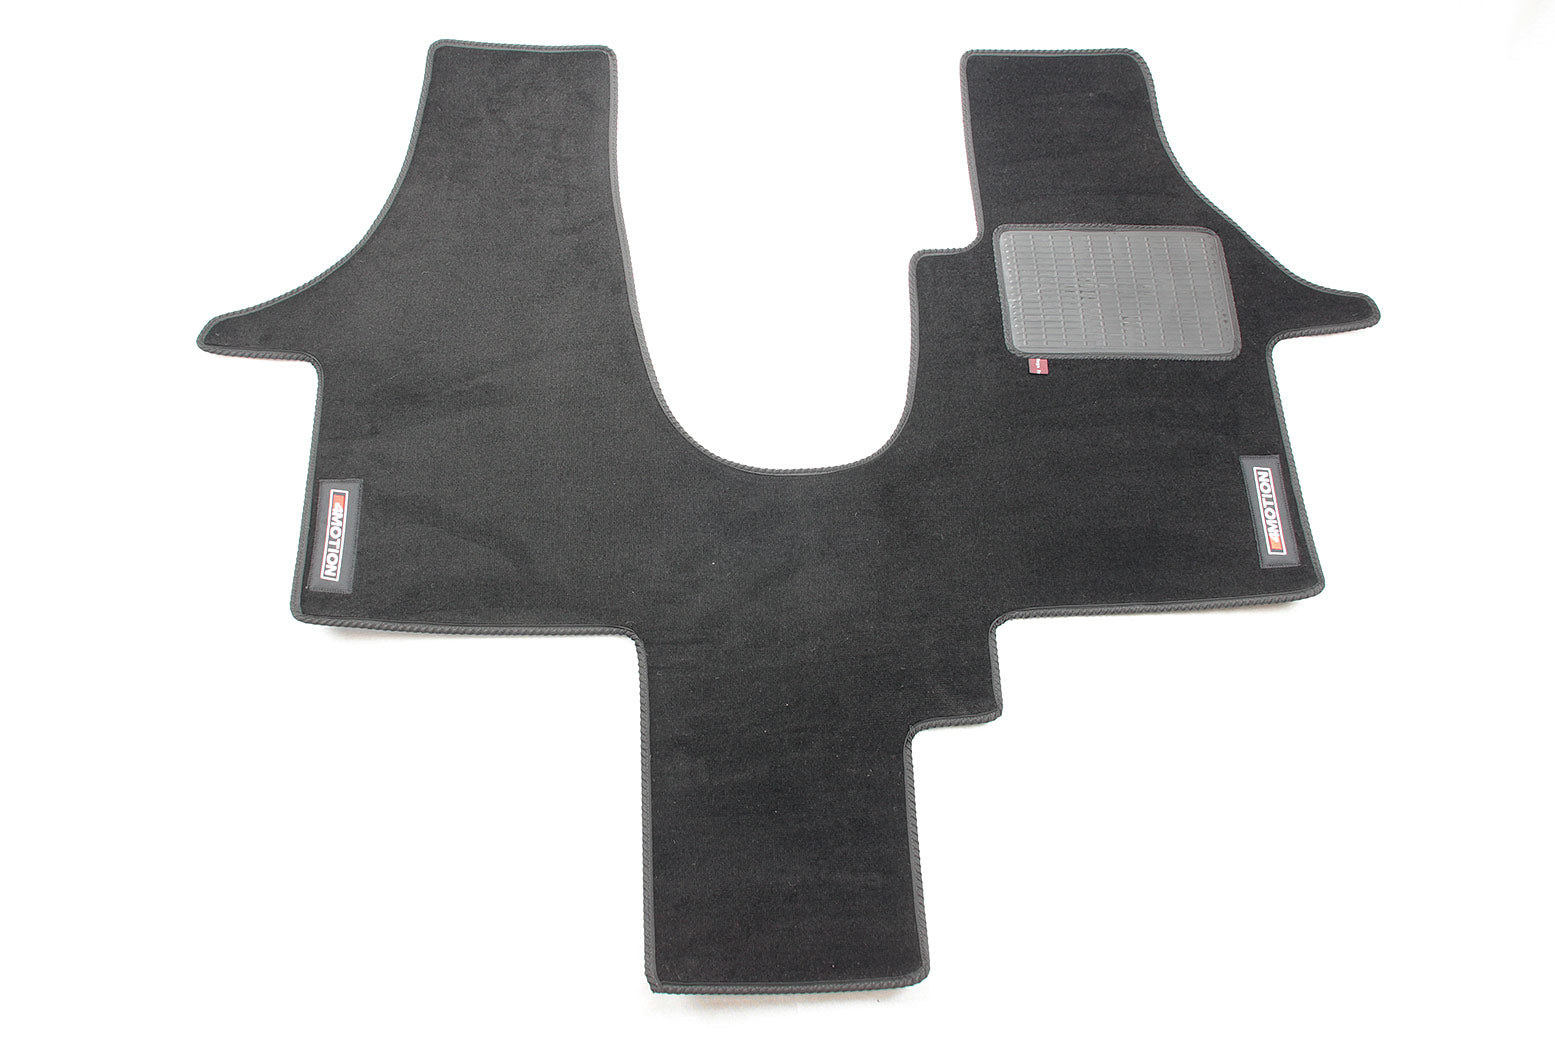 T5 1 plus 1 cab mat with embroidered 4 Motion logo